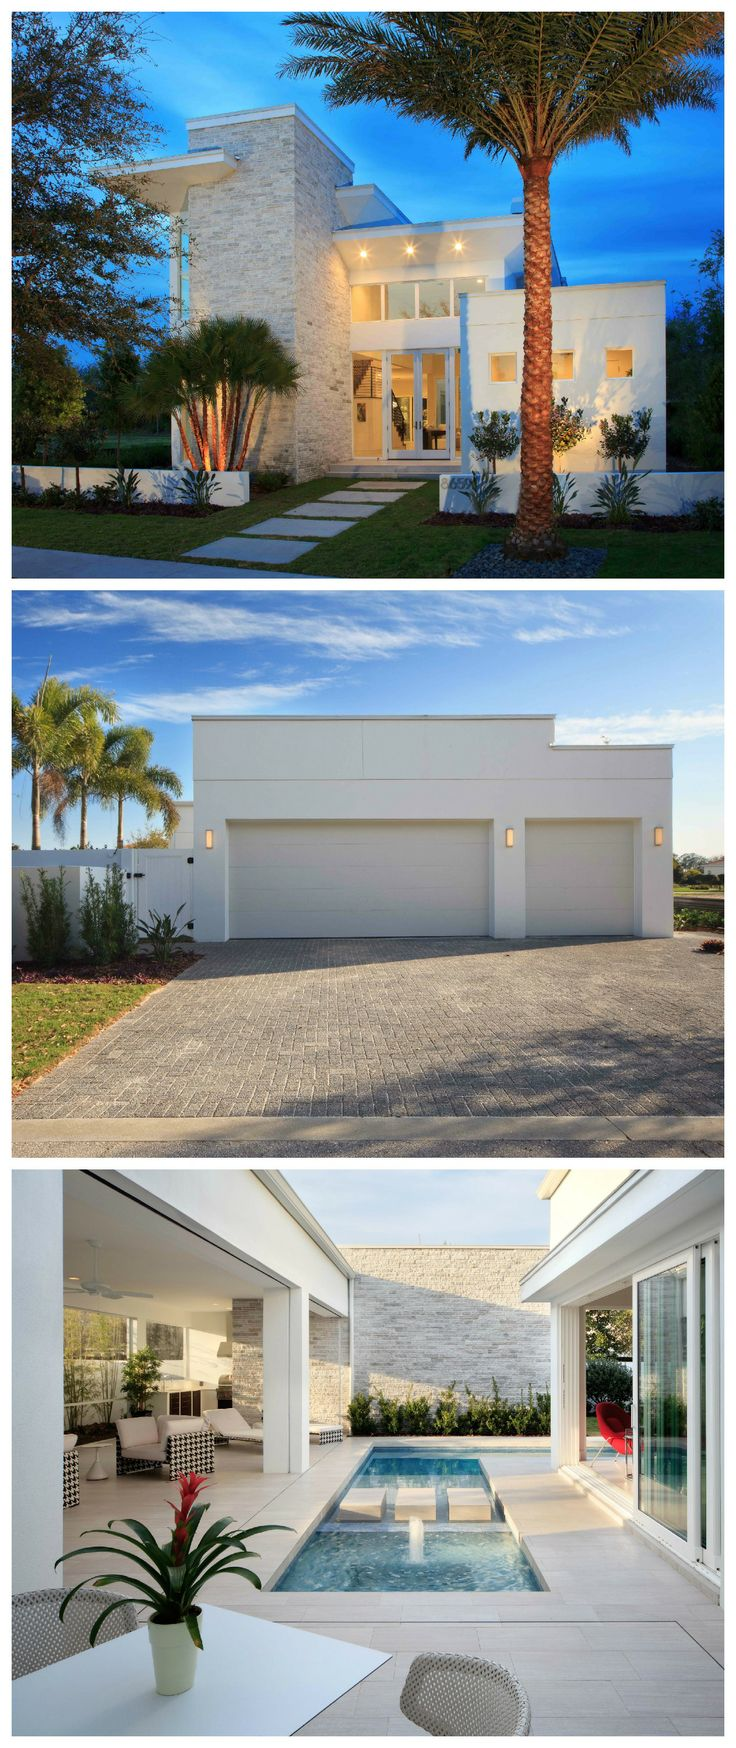 A Clopay flush panel steel door is a sleek garage door design option for a contemporary home like this Lake Nona, FL 2014 Parade of Homes model designed by Phil Kean Design Group. Another option is the Avante Collection glass garage door, which is a preferred choice of Phil's on his Waycool Homes portfolio. Take a look at both options at http://www.clopaydoor.com/